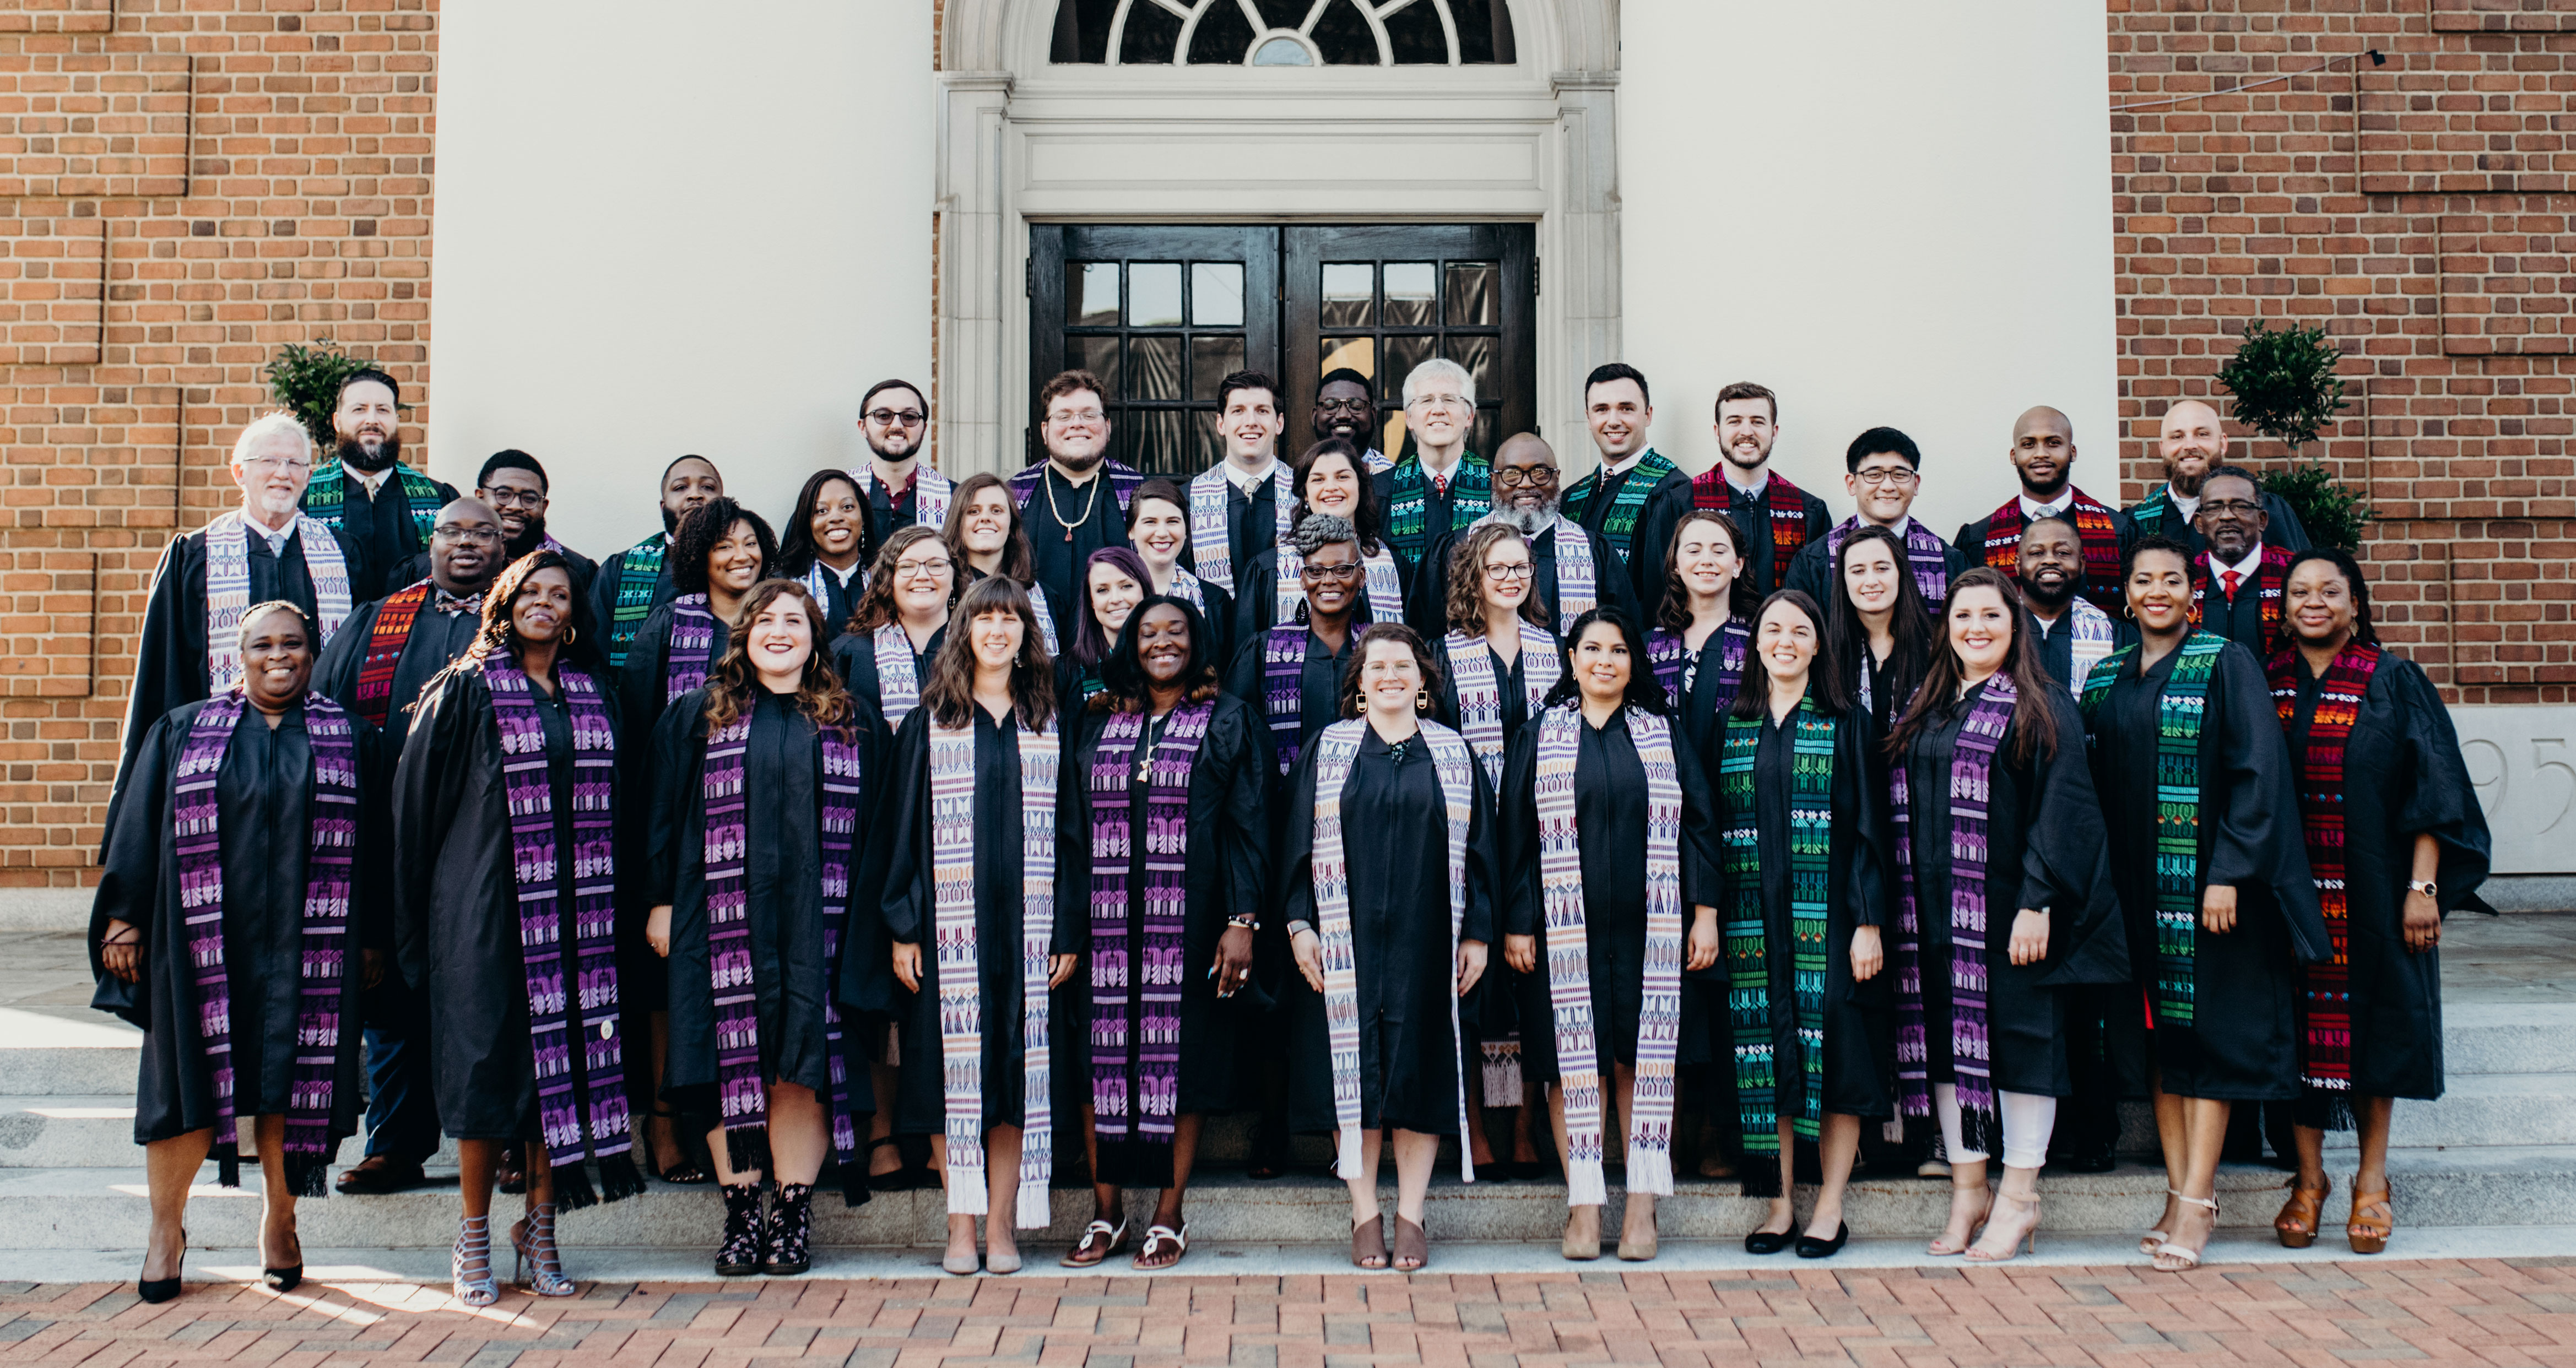 Group photo of the School of Divinity Class of 2019